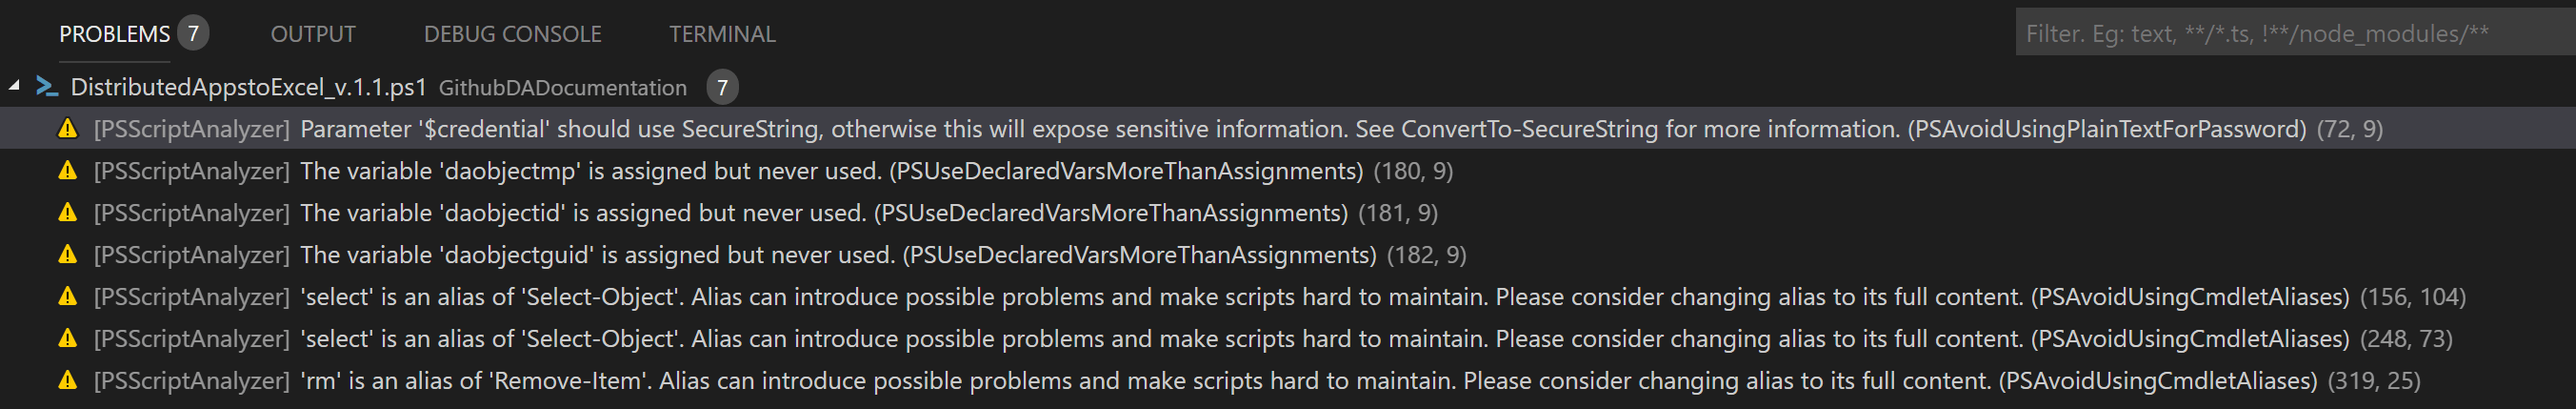 visual studio code powershell problems